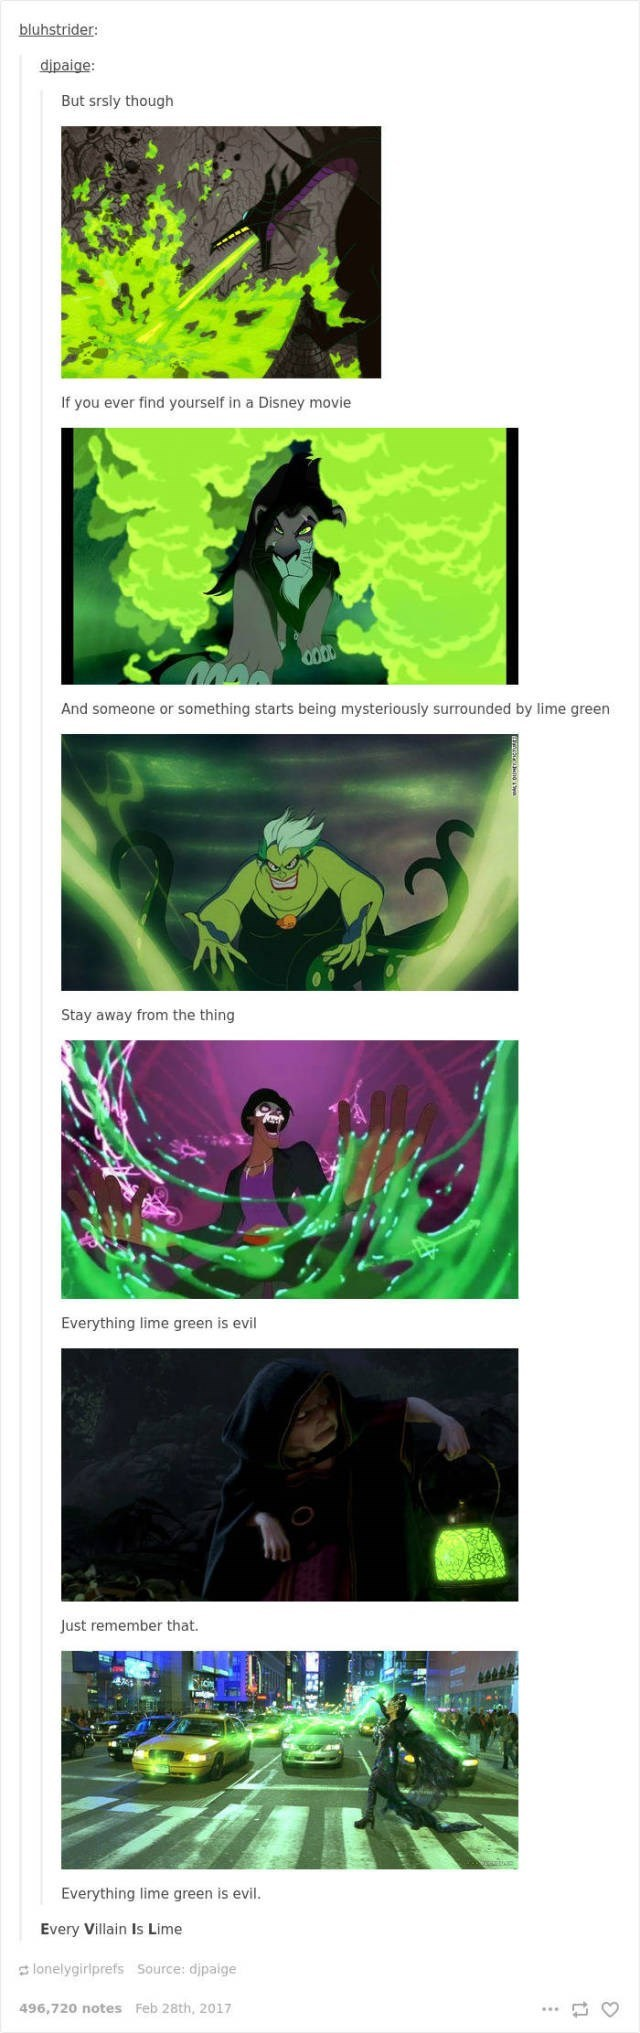 Green - bluhstrider: dipaige: But srsly though If you ever find yourself in a Disney movie And someone or something starts being mysteriously surrounded by lime green Stay away from the thing Everything lime green is evil Just remember that Everything lime green is evil. Every Villain Is Lime lonelygiriprefs Source: dipaige 496,720 notes Feb 28th, 2017